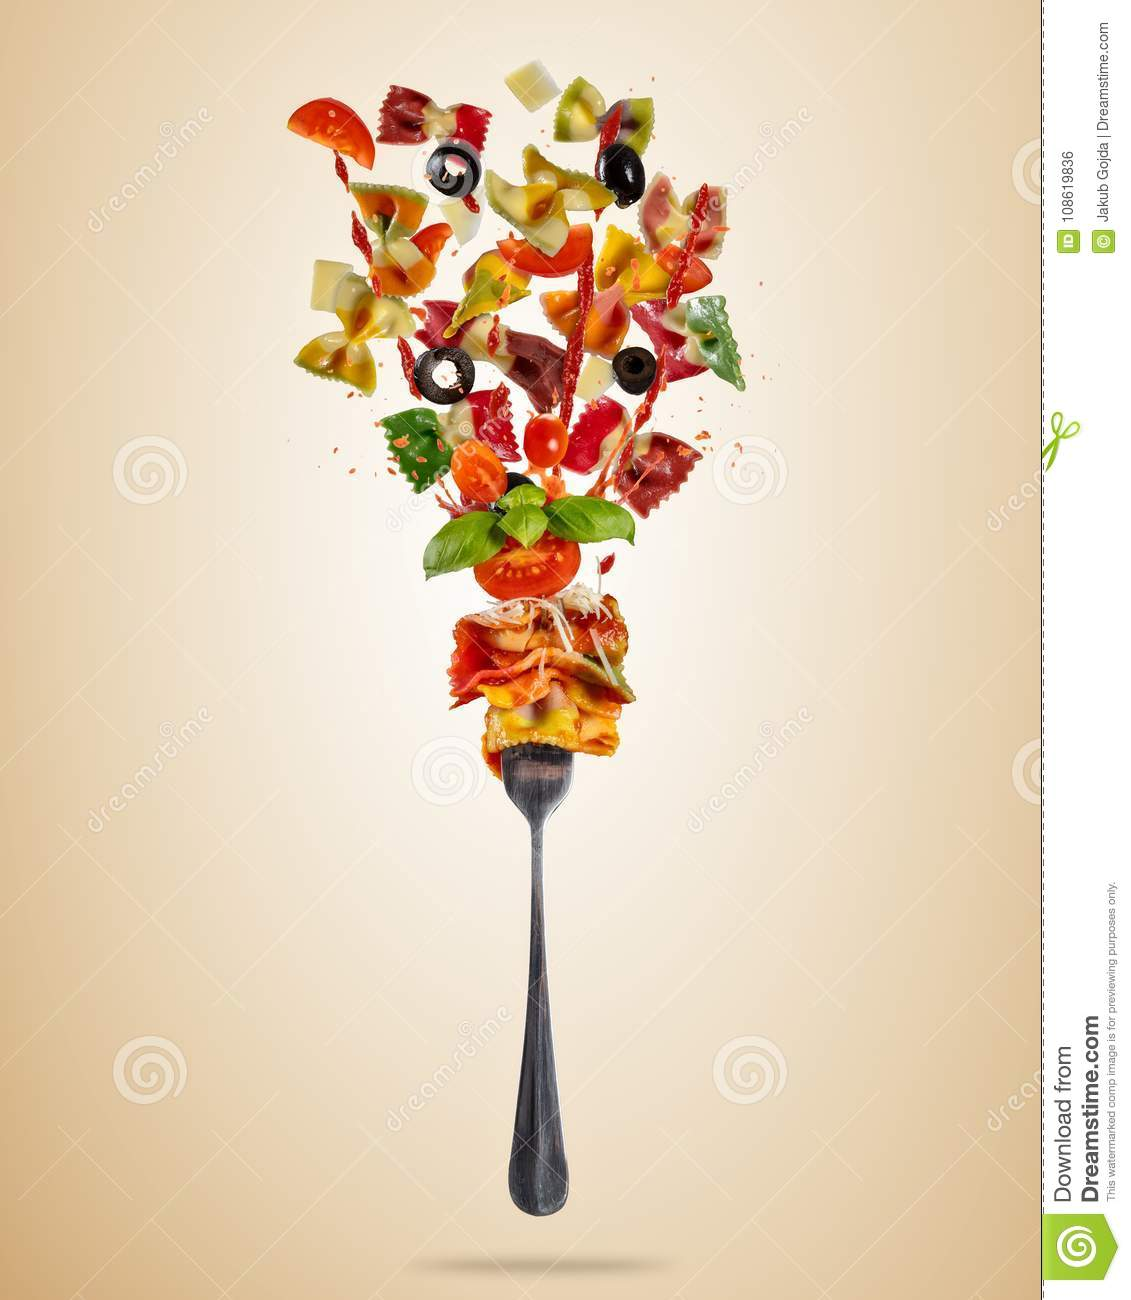 Concept Of Flying Food With Fork And Traditional Italian Farfall